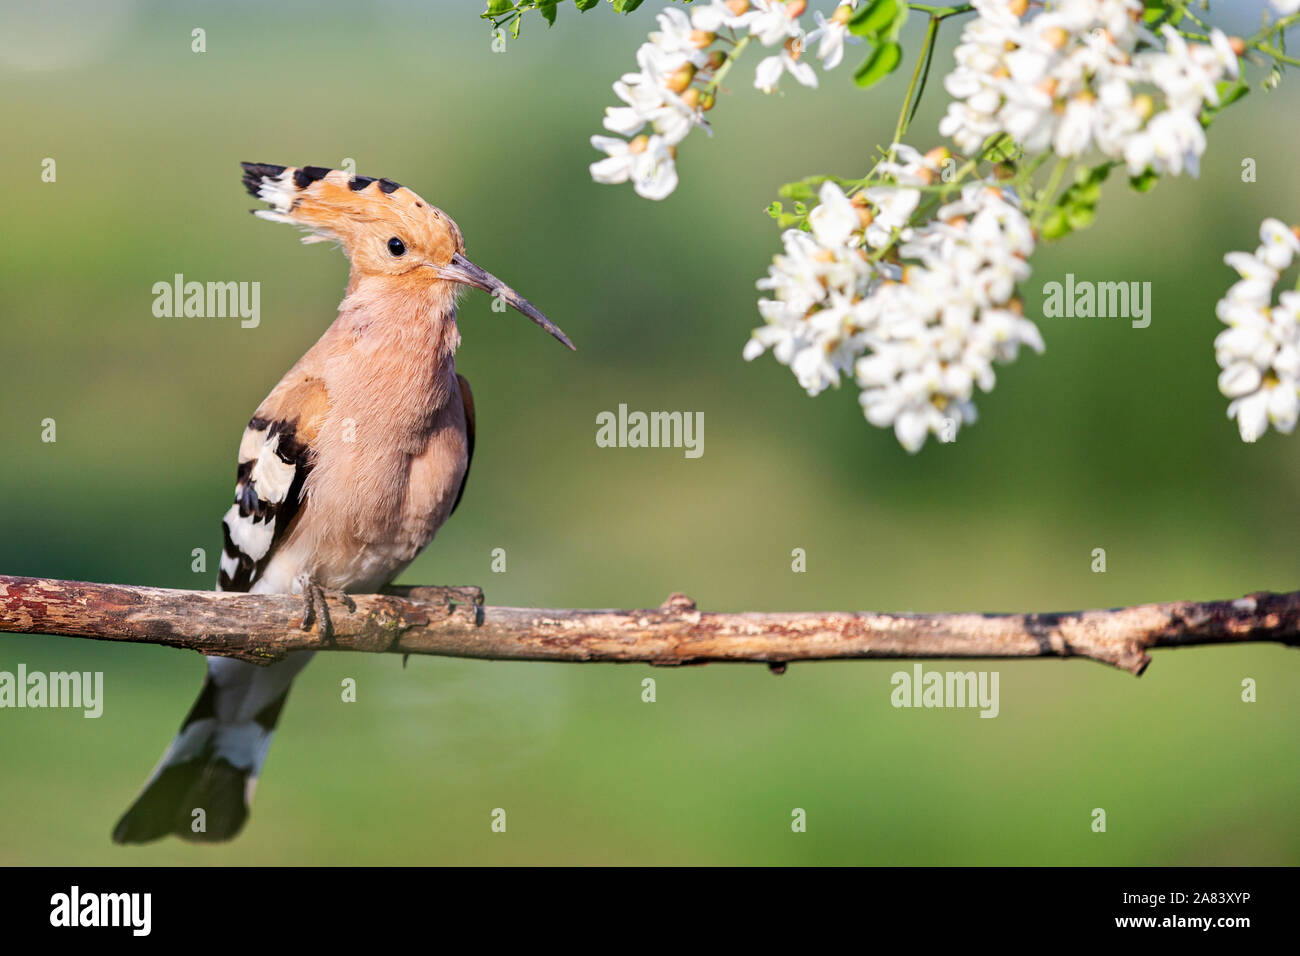 wild bird with a crest on its head sits in the flowers of a robinia Stock Photo